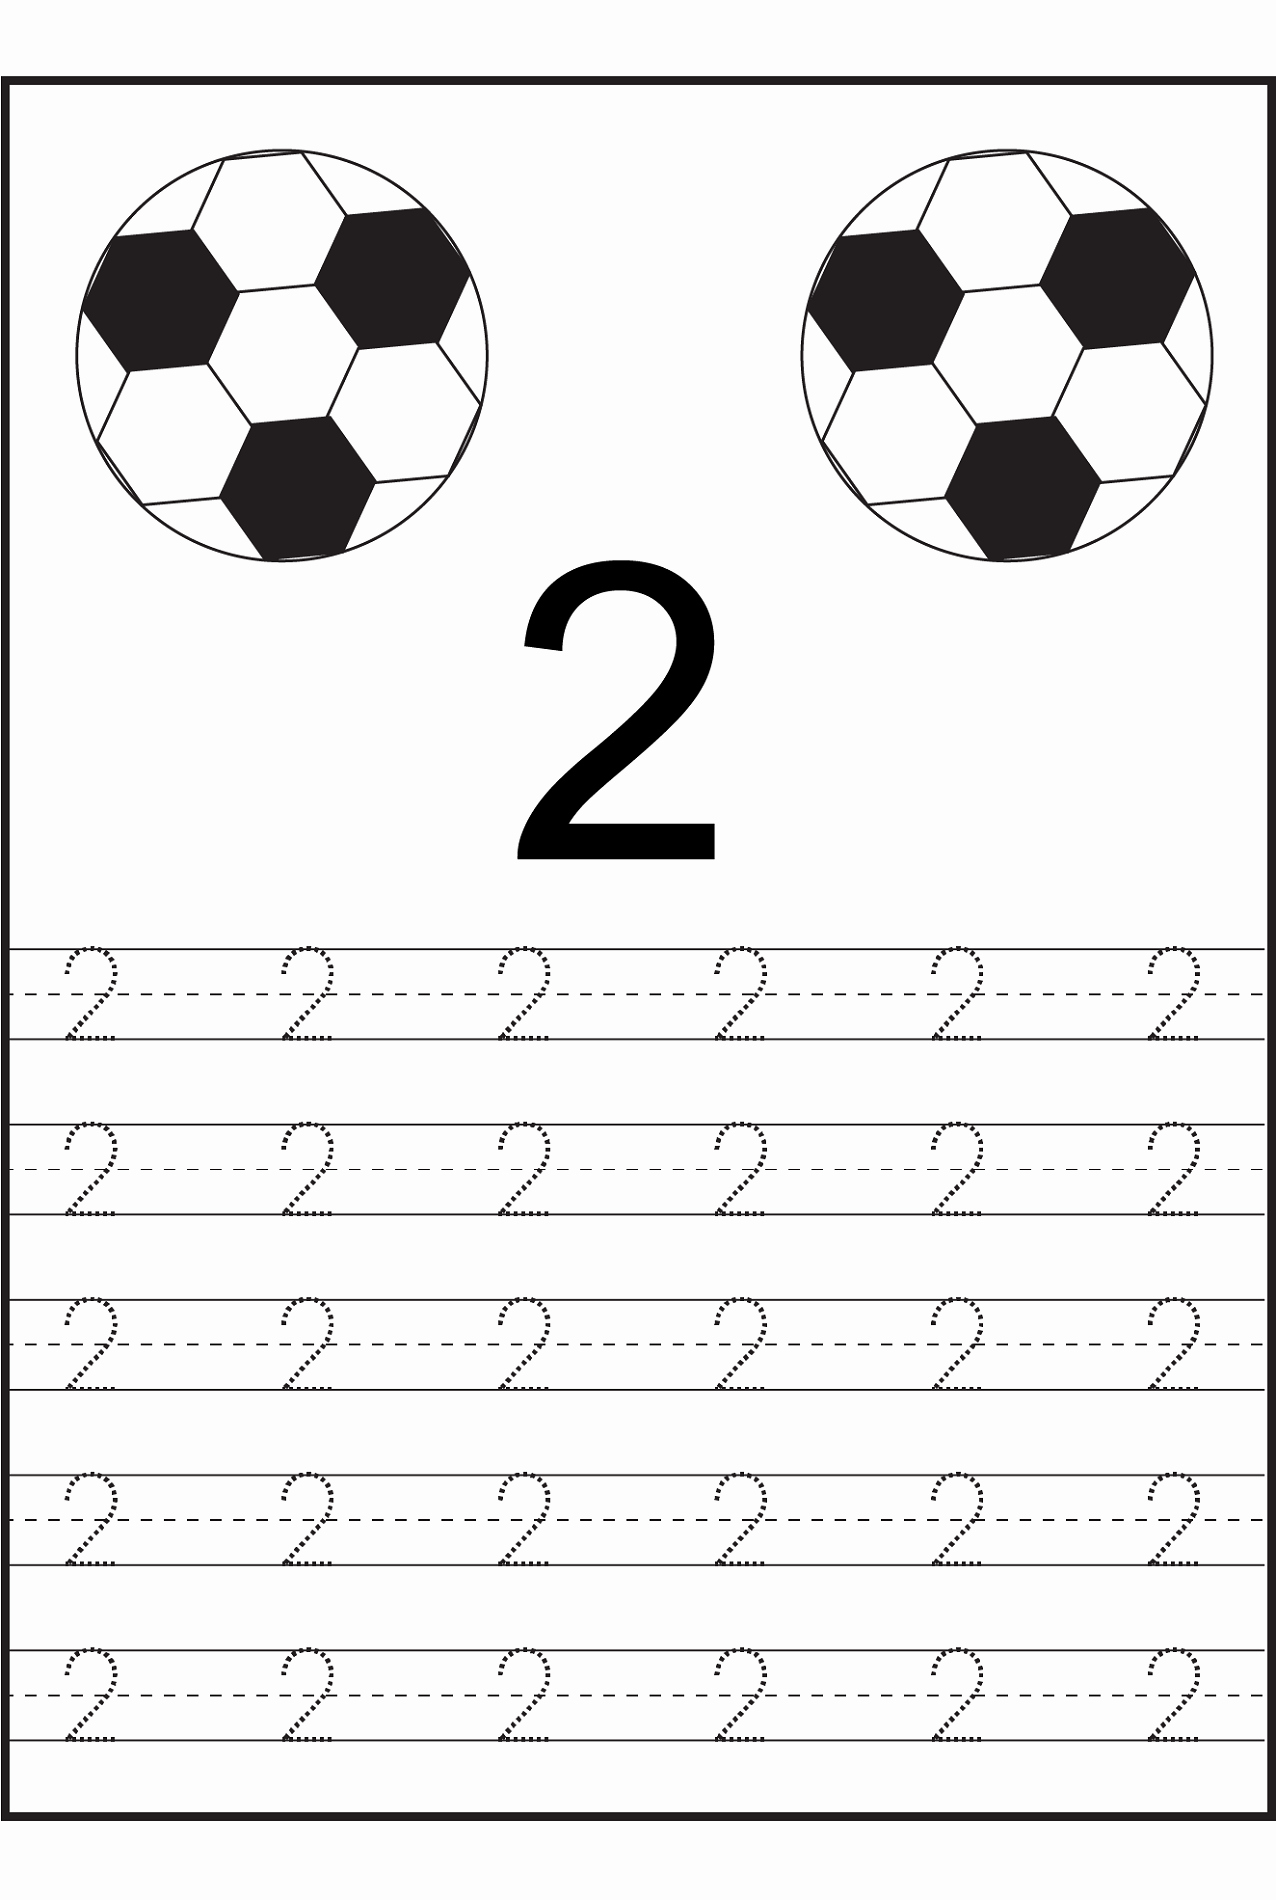 Number 2 Worksheets for Preschool Lovely Trace Number 2 Worksheets